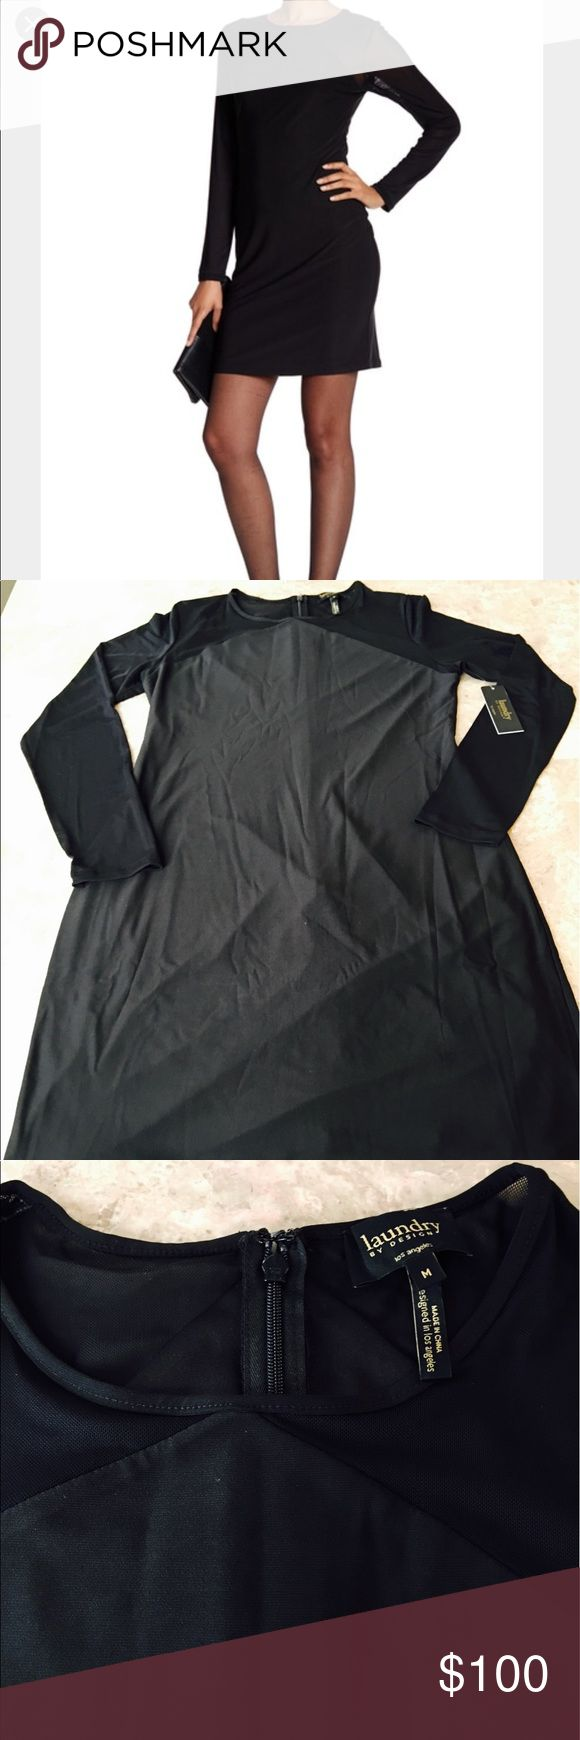 """BRAND NEW WITH TAG LAUNDRY DRESS Very beautiful and elegant / black / with mesh detail / approx 37 """" or knee high for a petite lady. Laundry by Design Dresses Long Sleeve"""